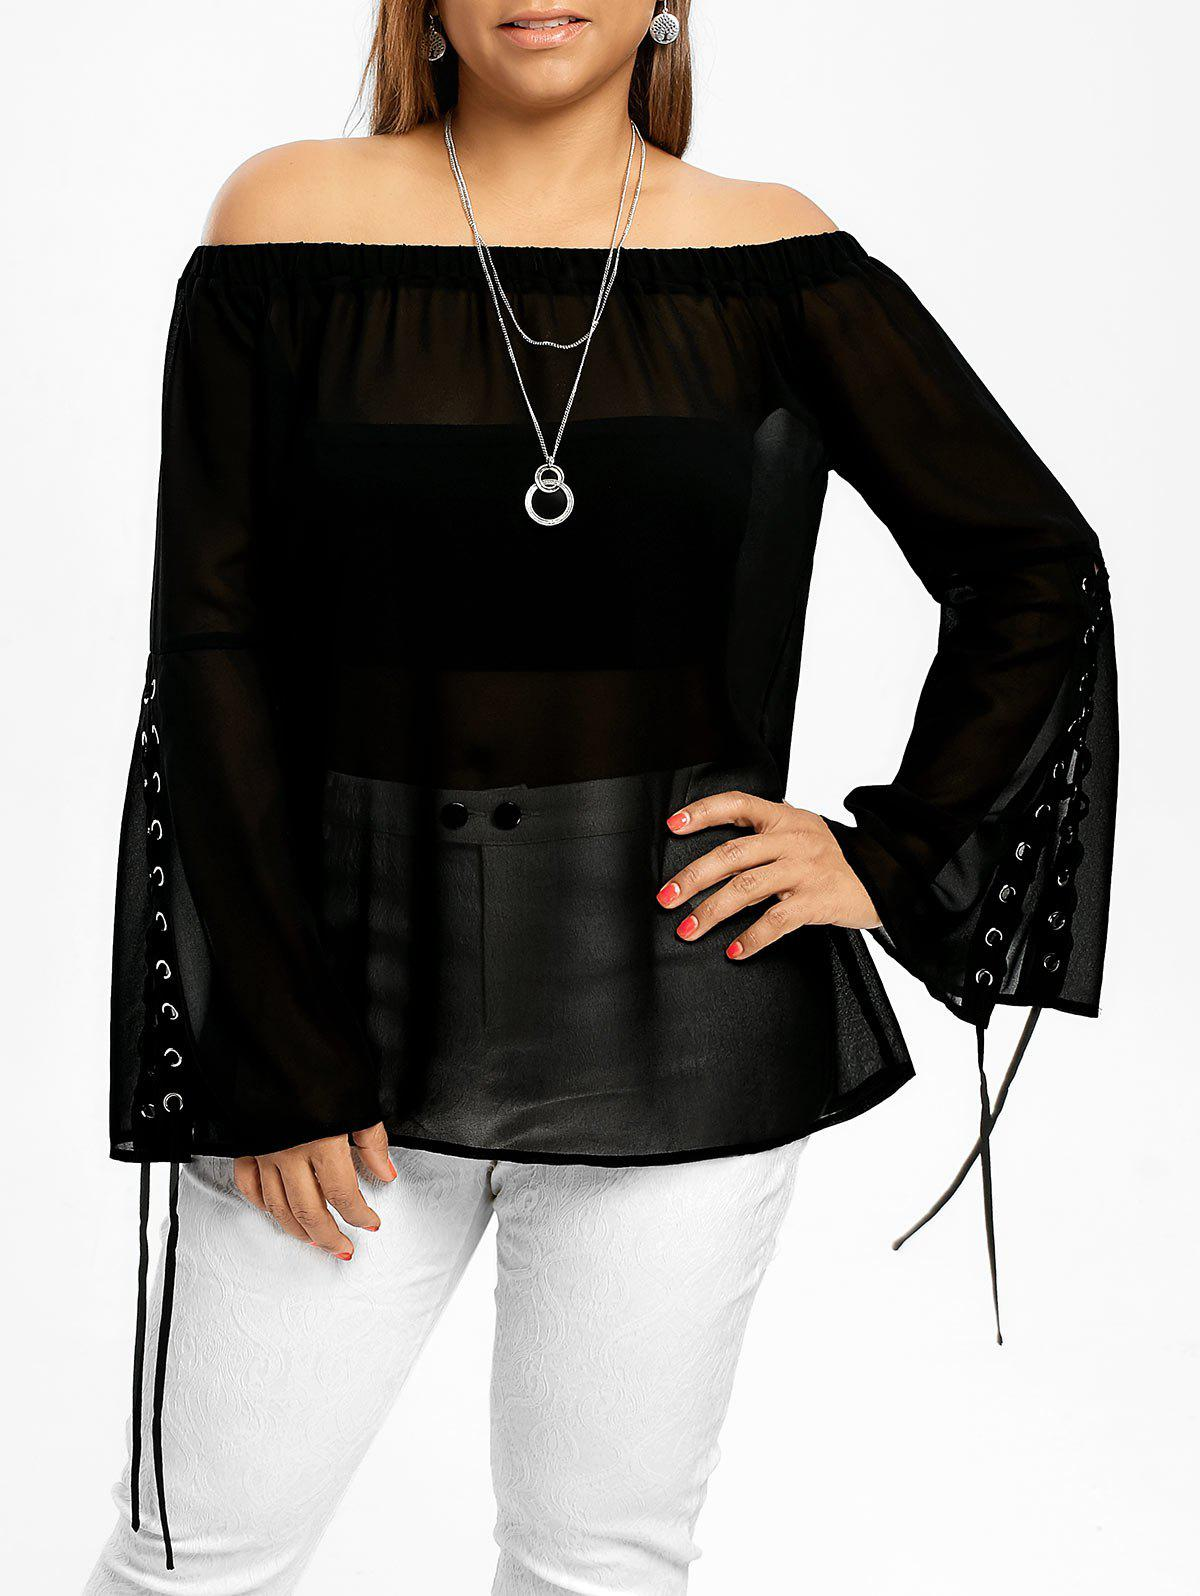 e715872a8e0 2019 Plus Size Lace Up OFF The Shoulder Top